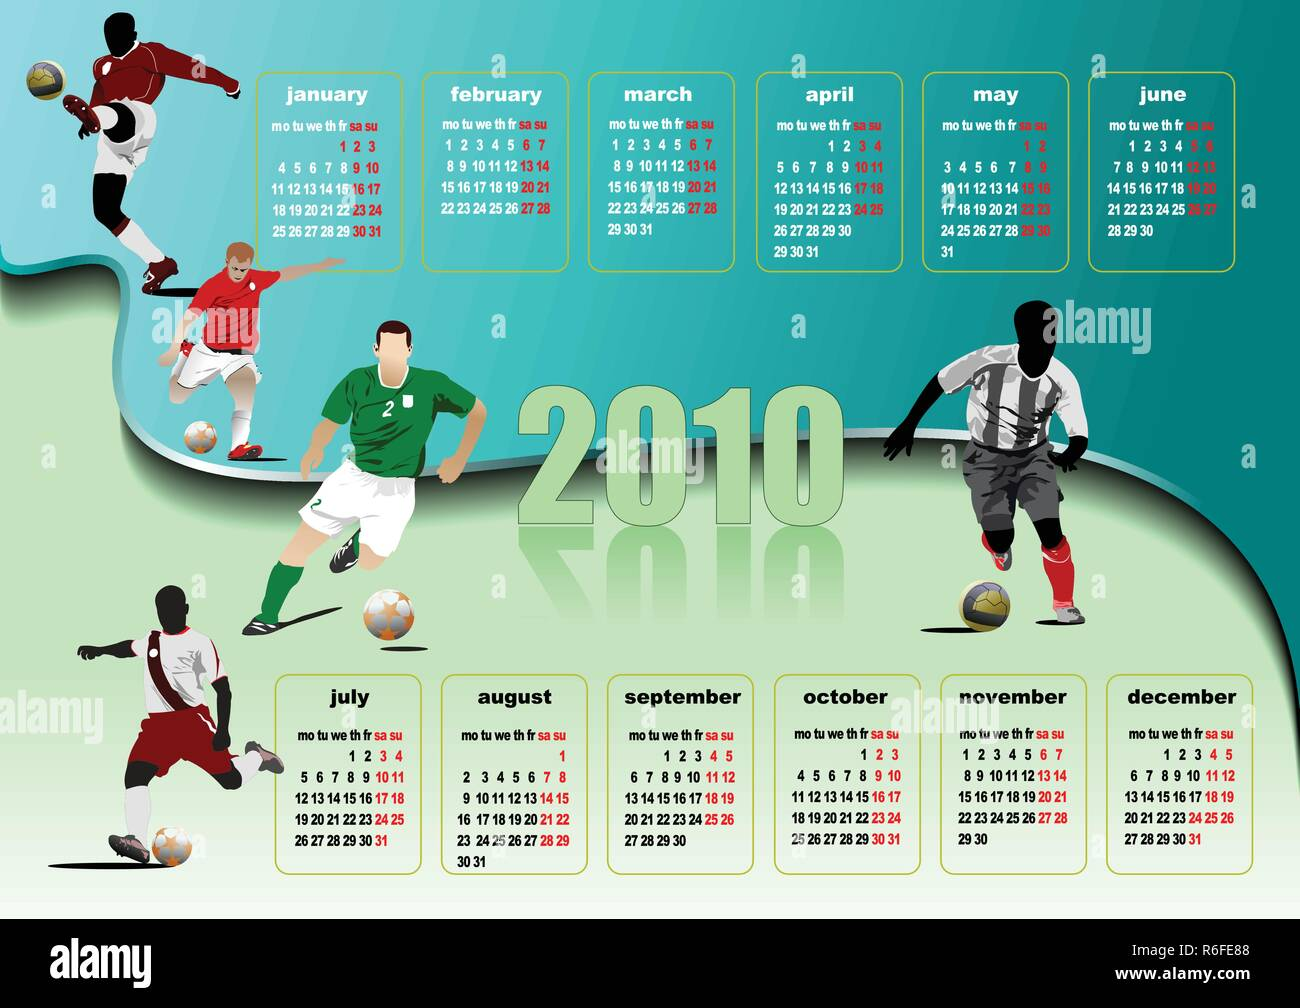 Calendar 2010 with soccer players image. Months. Vector illustration Stock Vector